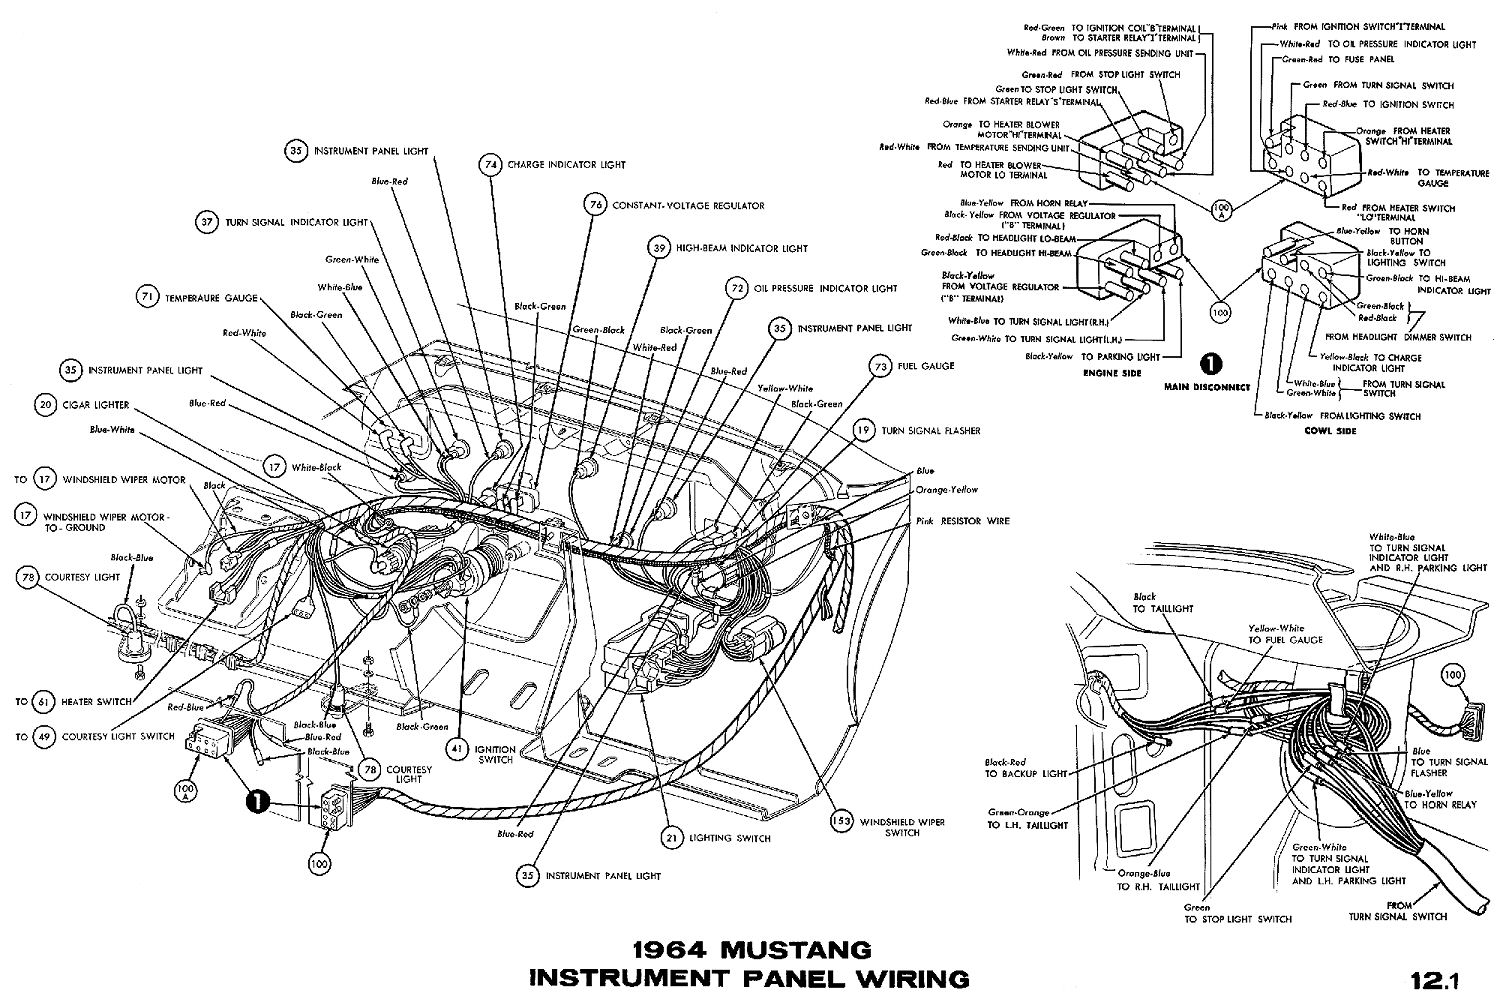 1964b 1964 mustang wiring diagrams average joe restoration 1968 mustang instrument cluster wiring diagram at readyjetset.co